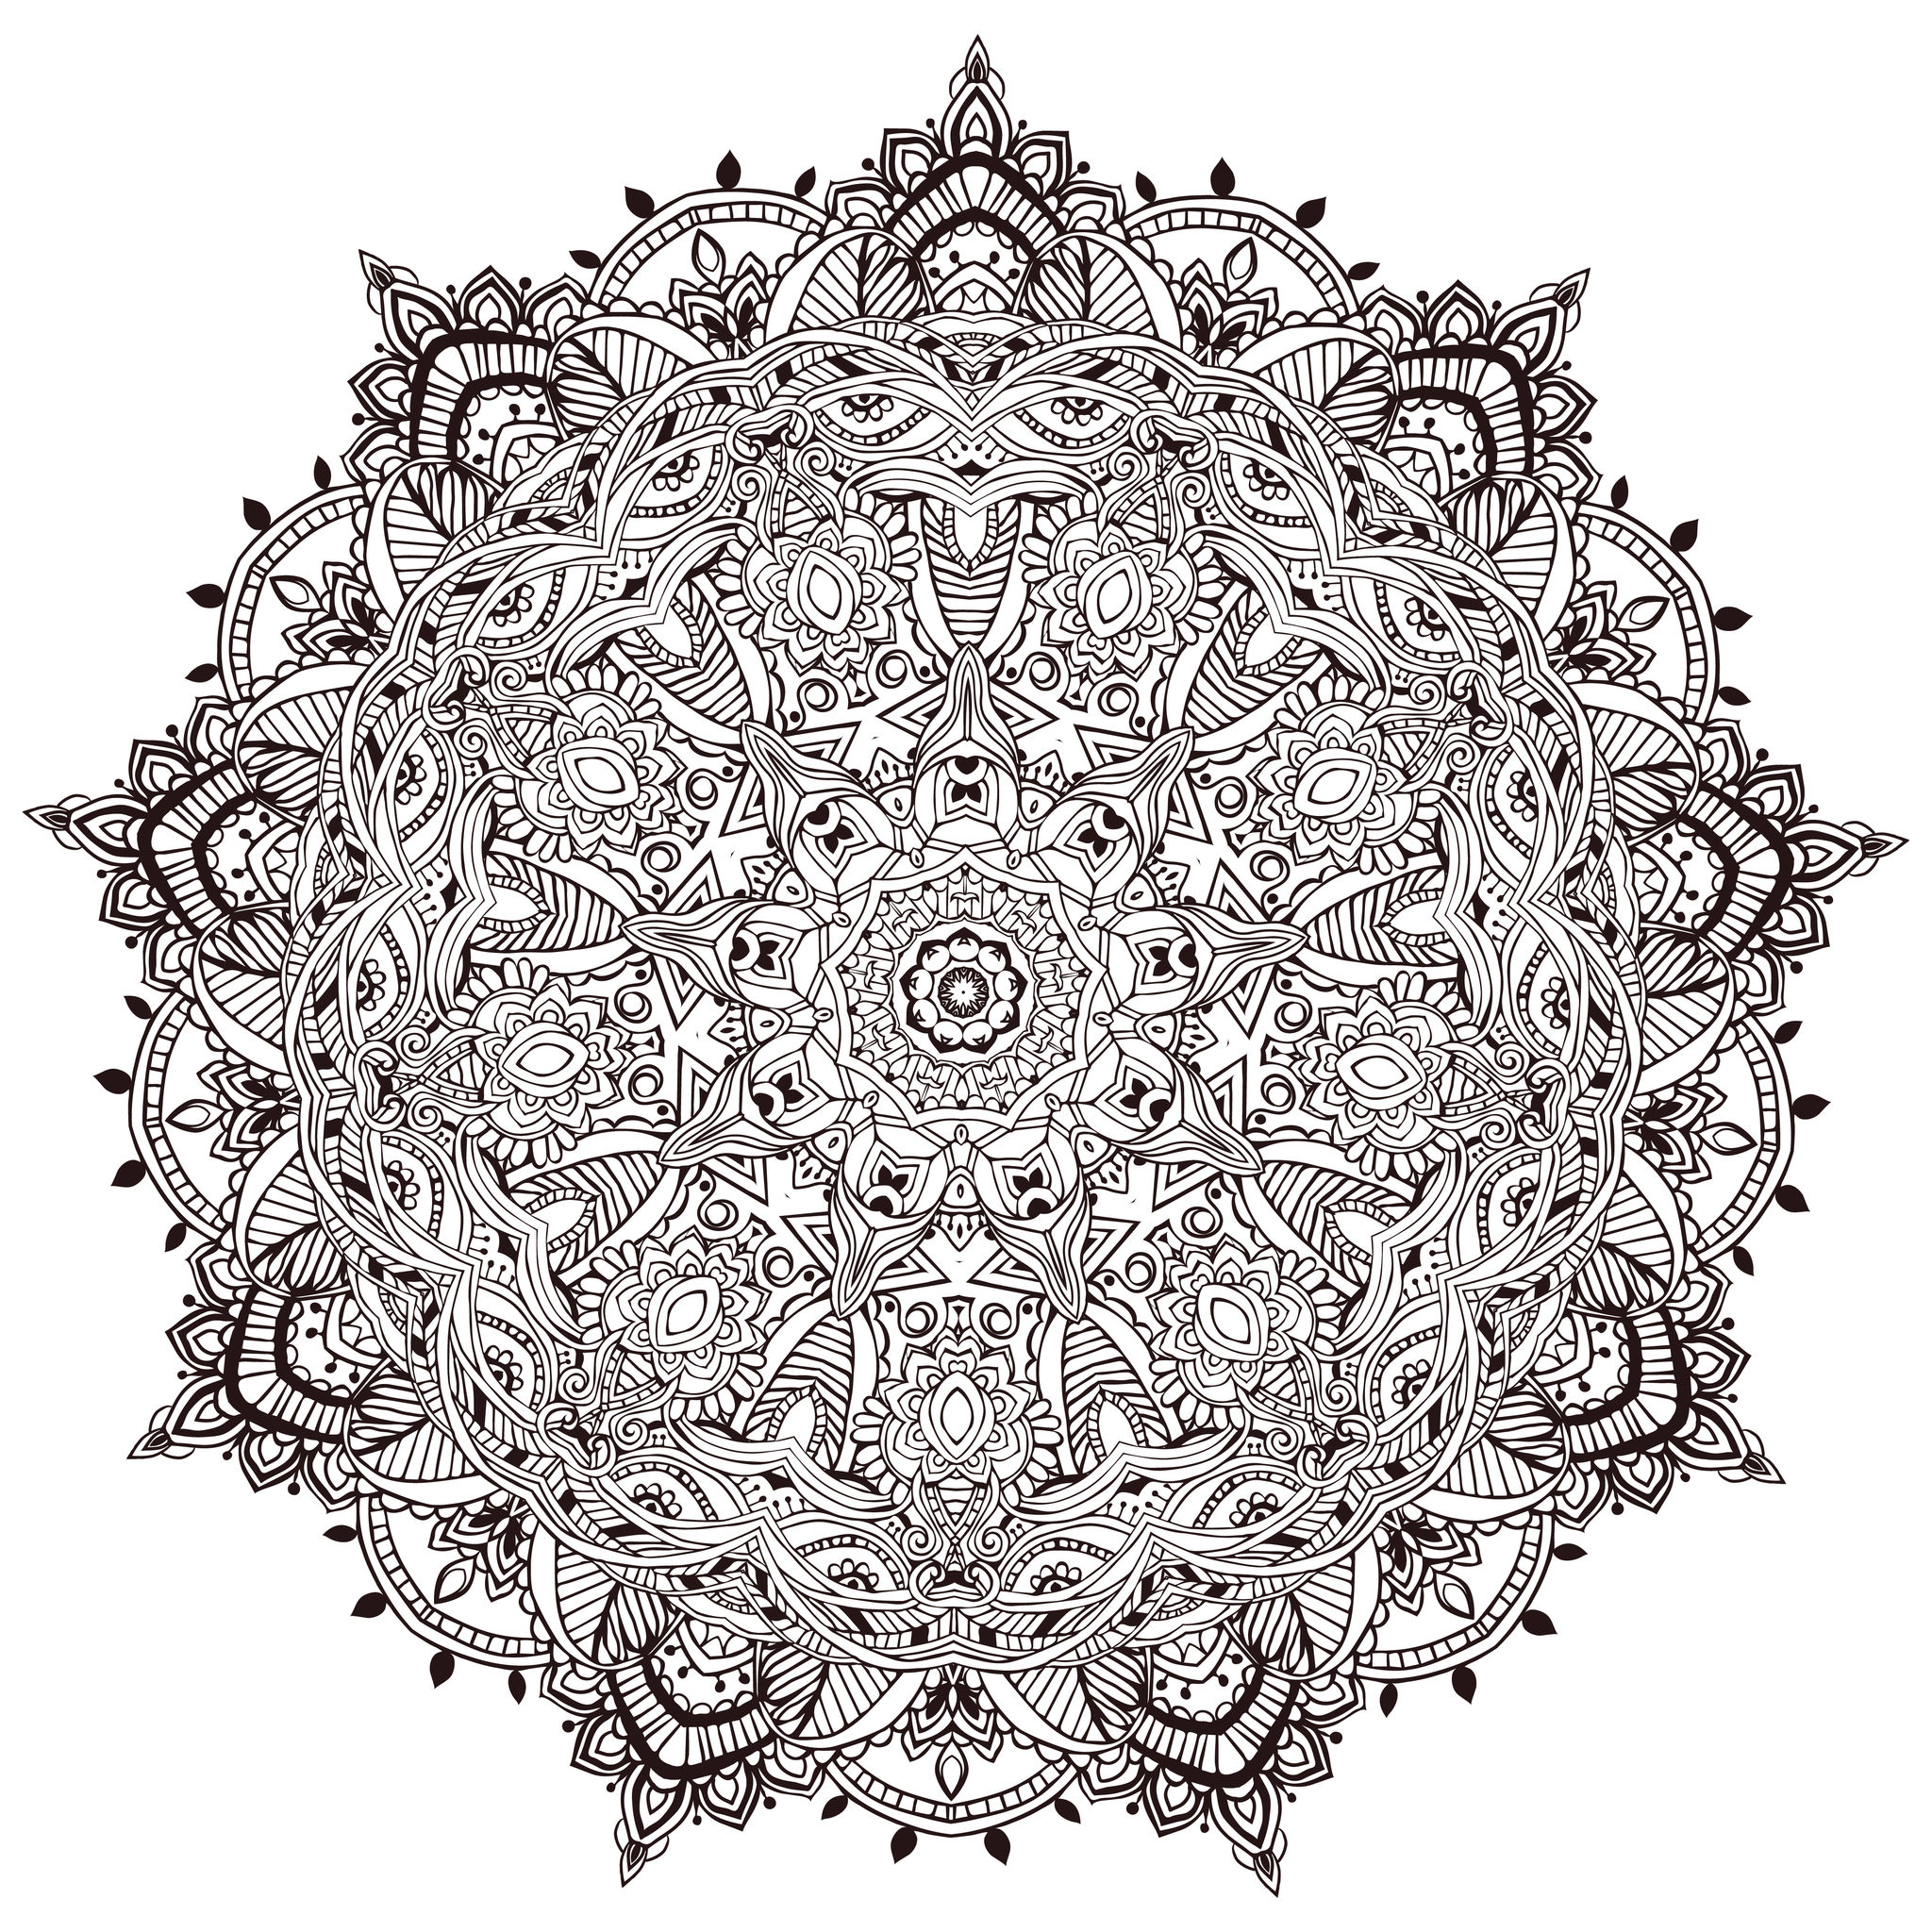 Color this ultra unique and complex Mandala coloring sheet ! To maximize the stress reduction, silence your cell phone and turn off computer and TV. You never saw a Mandala like this one !